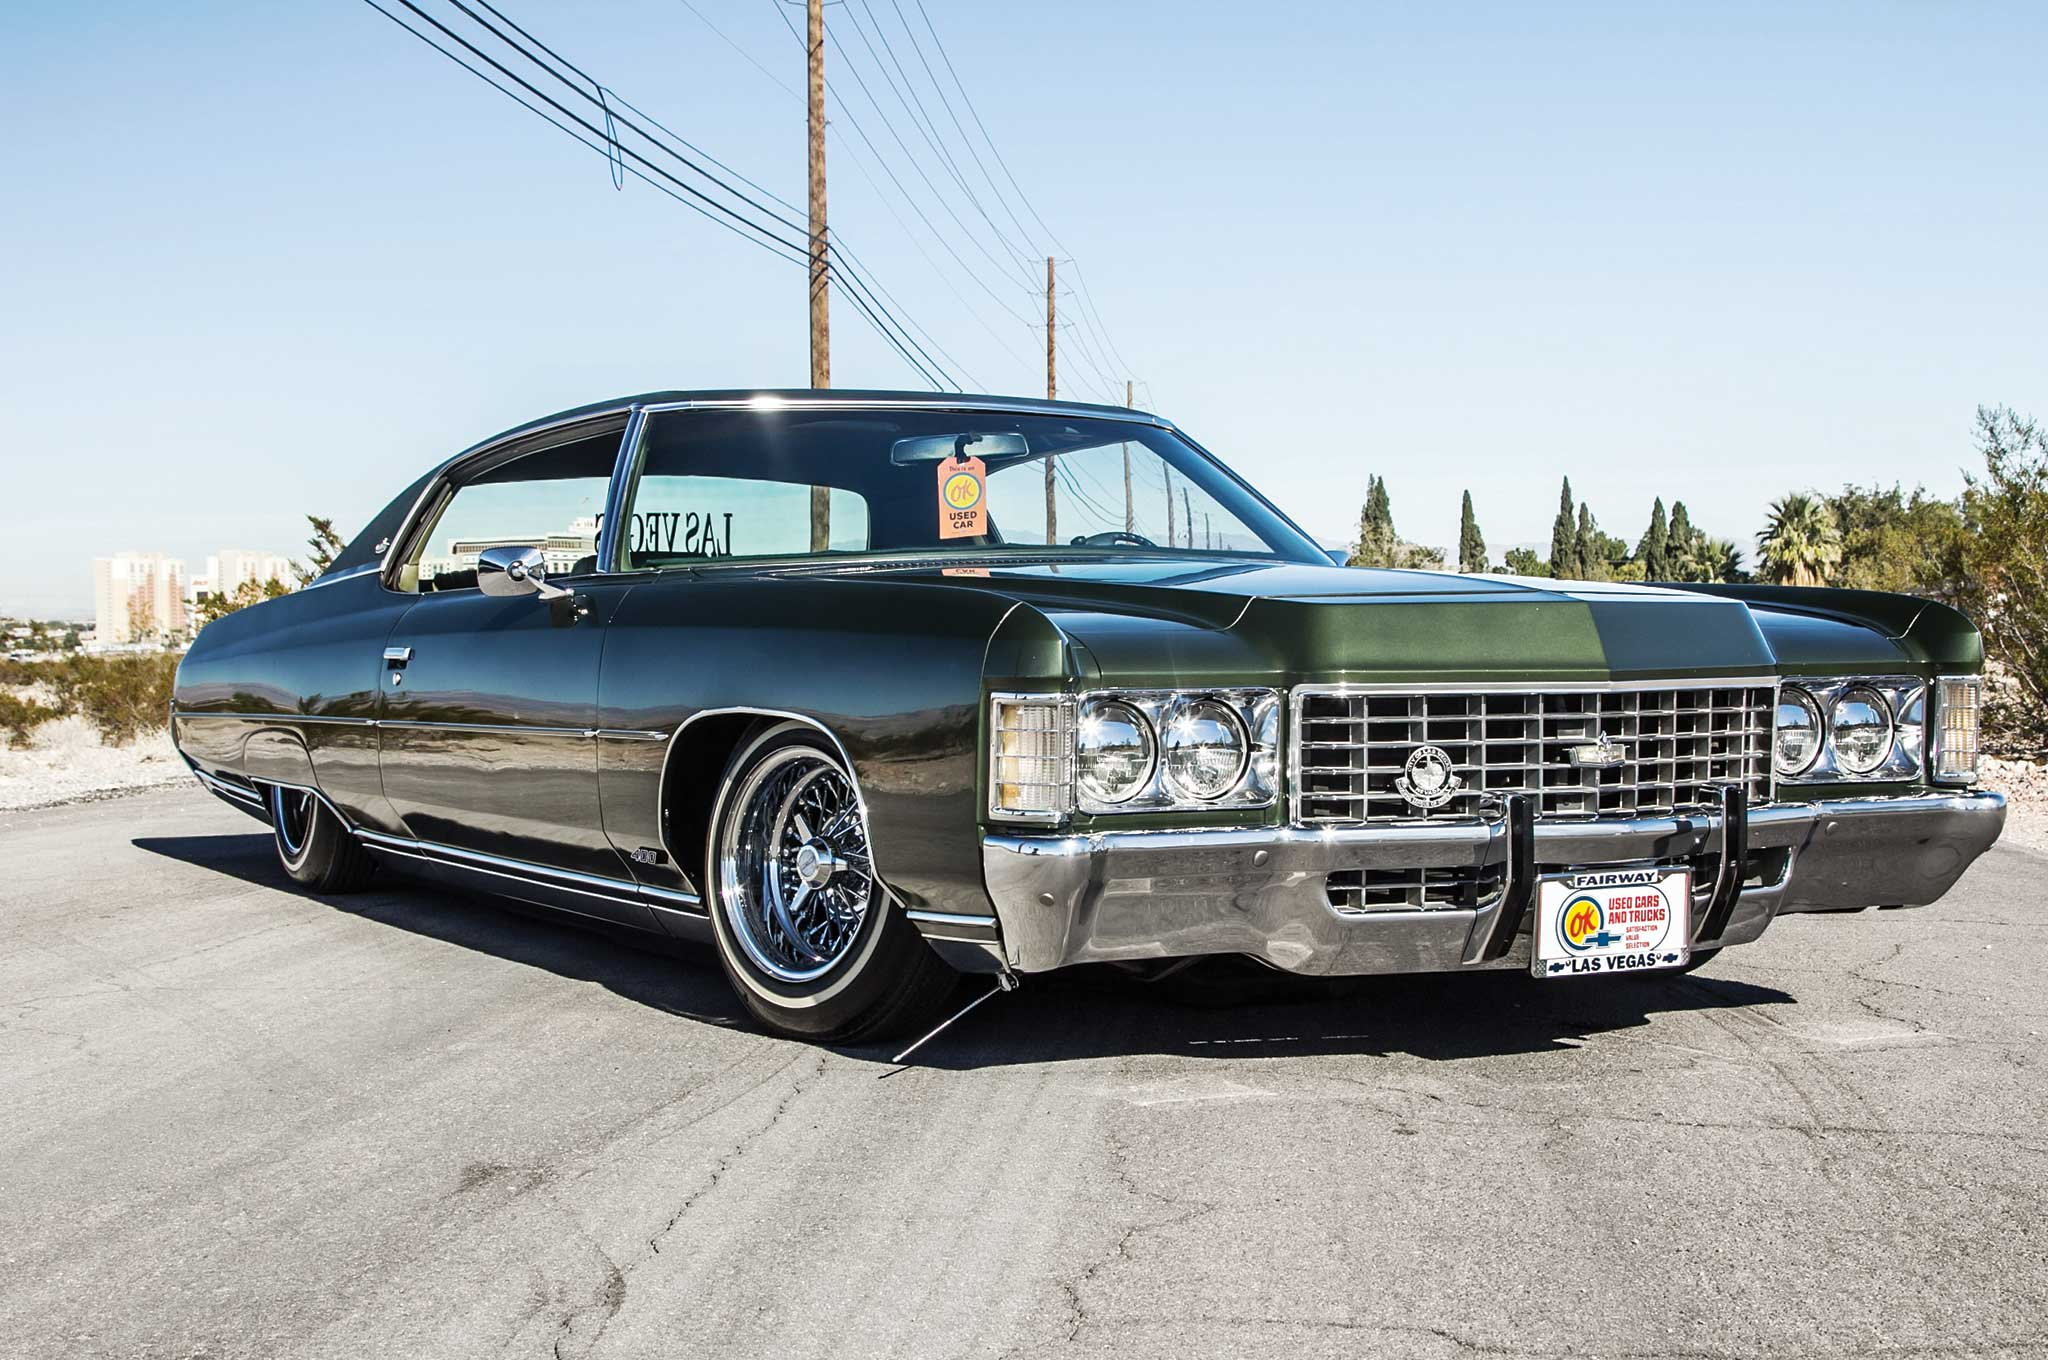 1971 Chevrolet Caprice Frozen In Time Lowrider